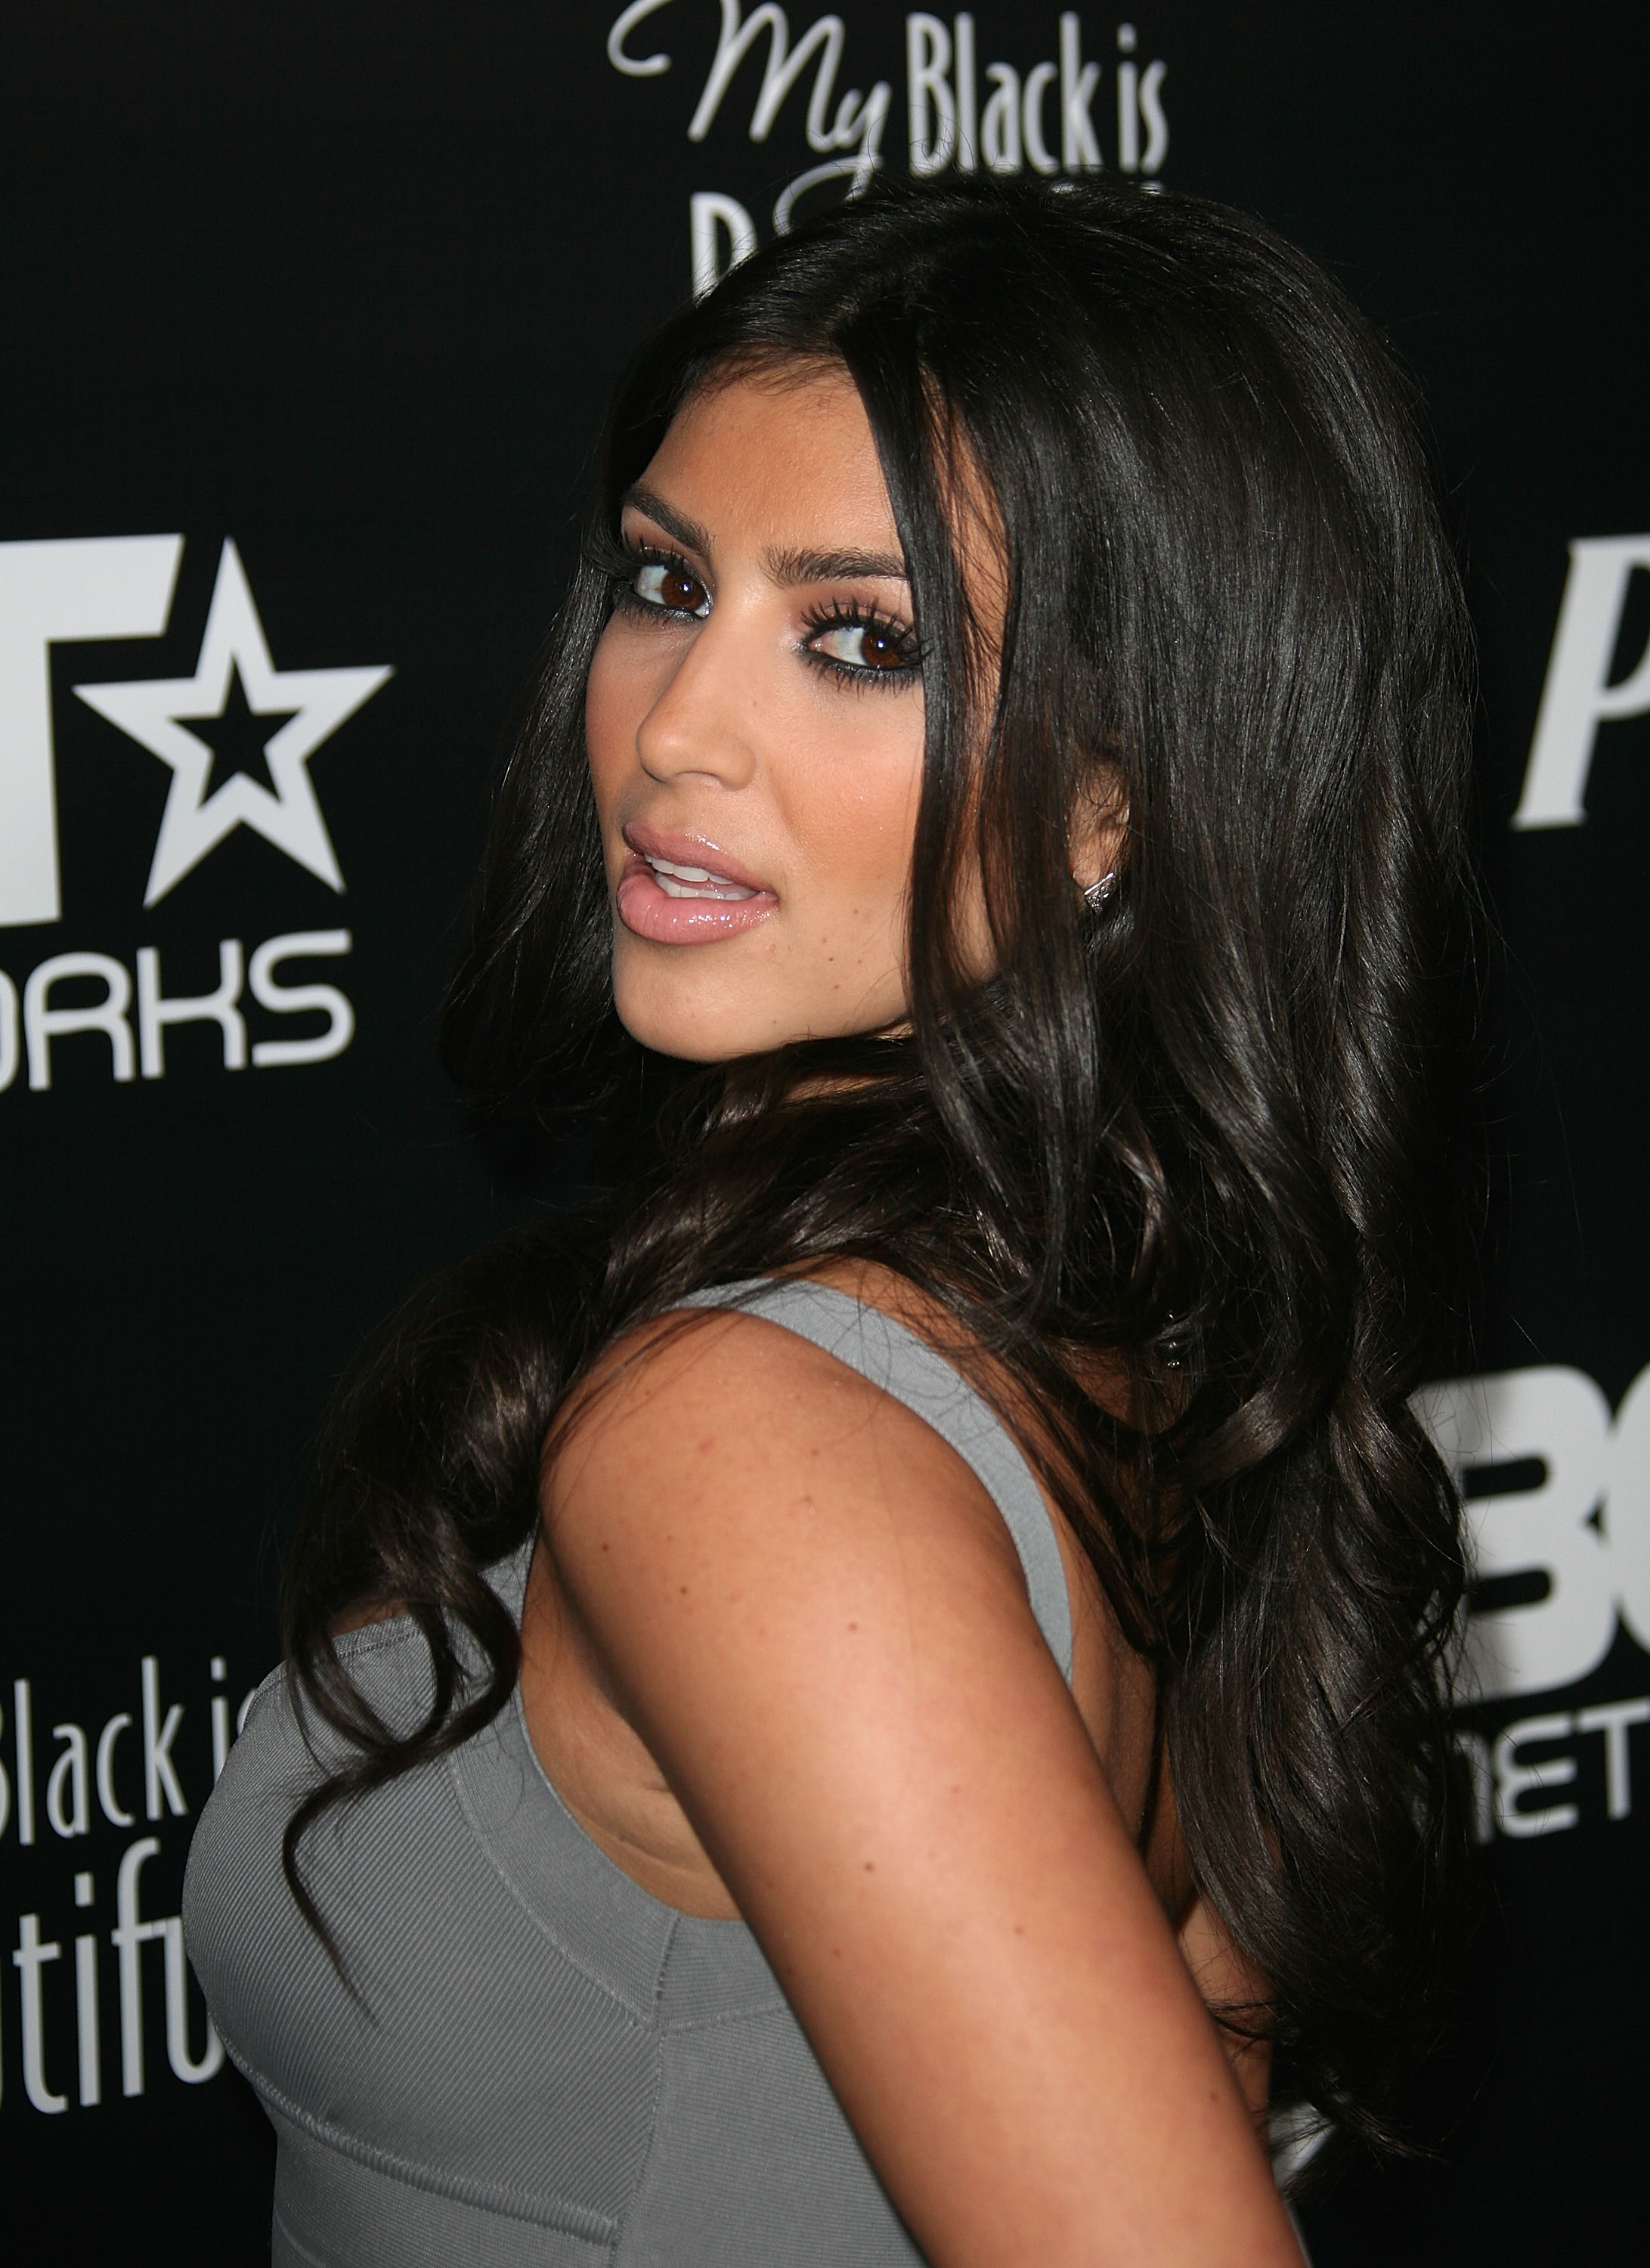 kim kardashian and ray j full pictures free № 56728